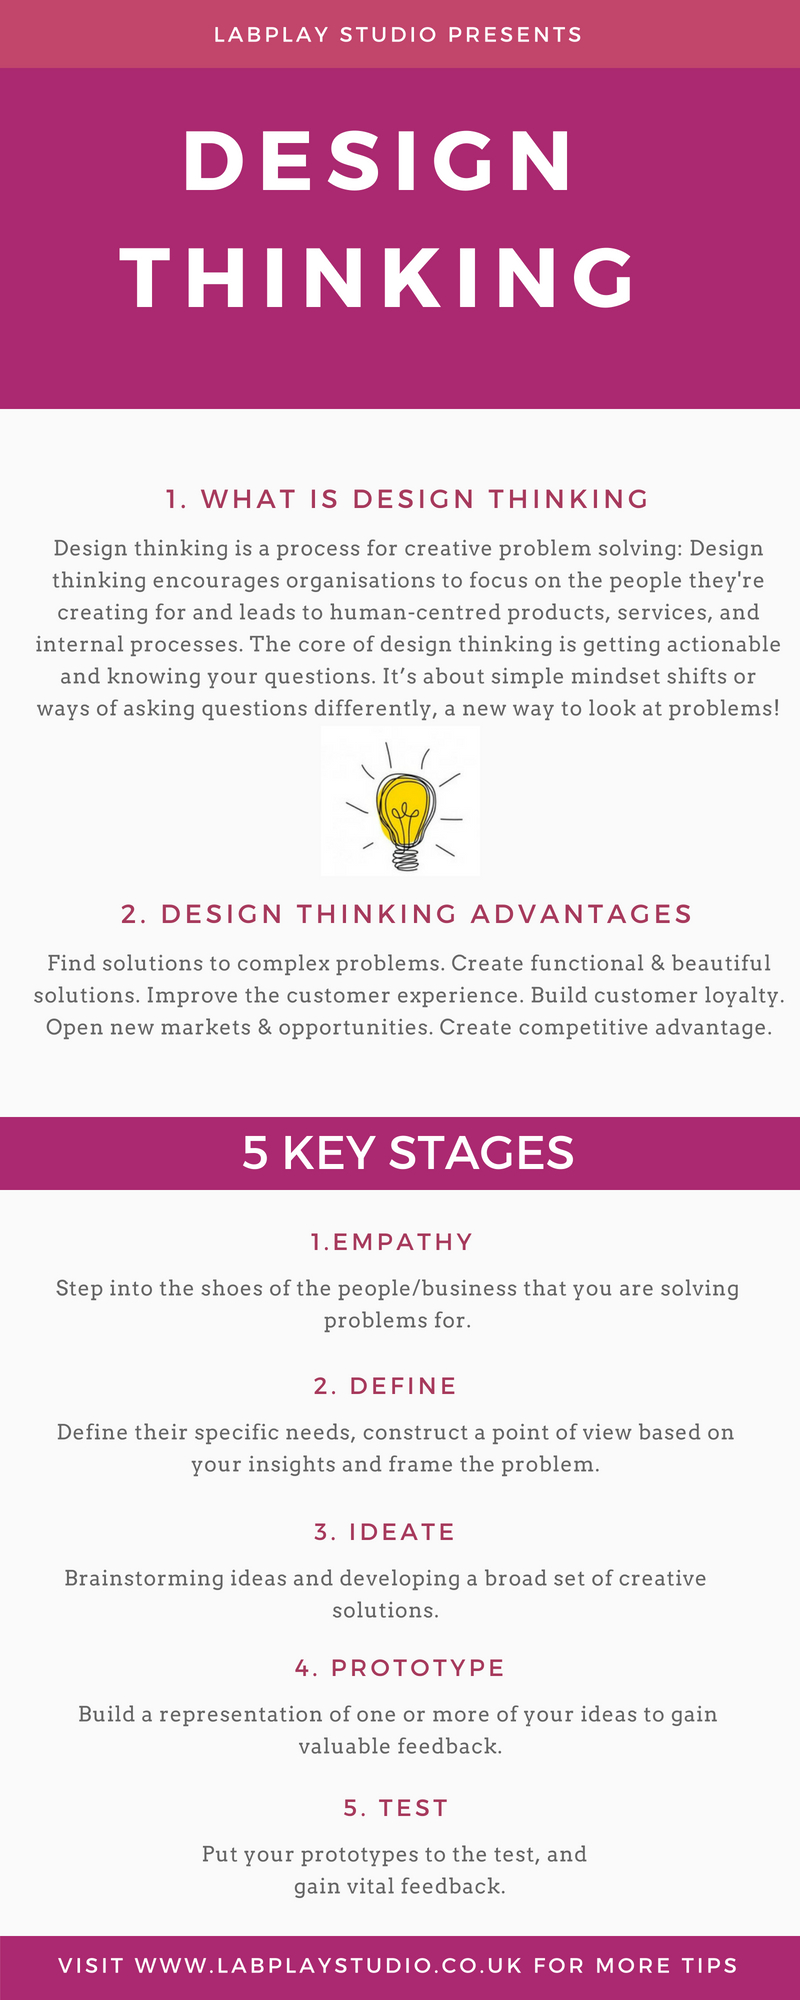 A sample of the design thinking process and design thinking methods that are used by LabPlay Studio for UX, Service Design and Innovation Workshops in Birmingham. Lab Play Studio.